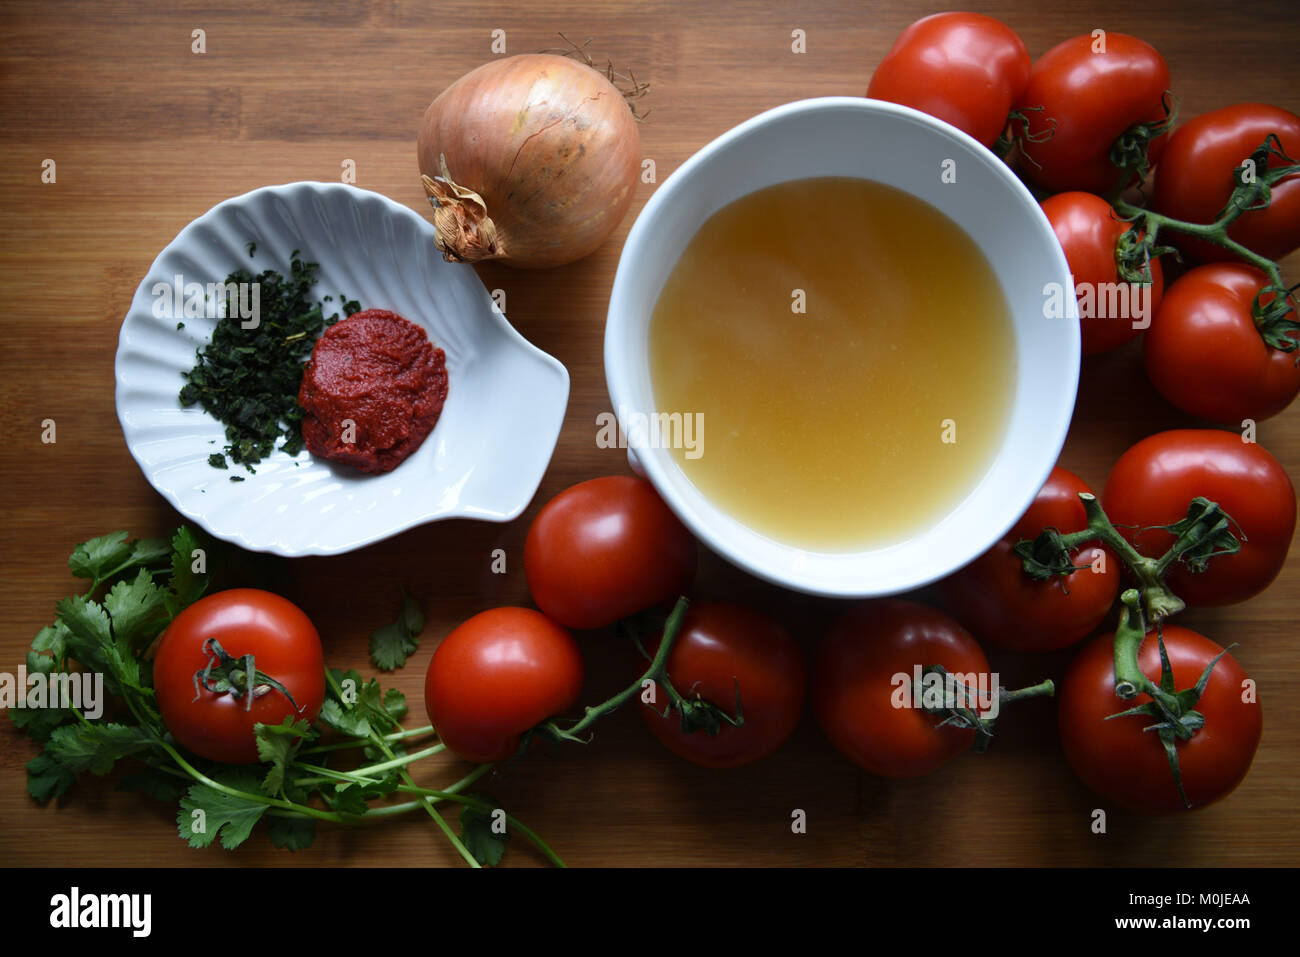 overhead food photography view of ingredients for home made tomato soup on a rustic wood board background with vegetables - Stock Image